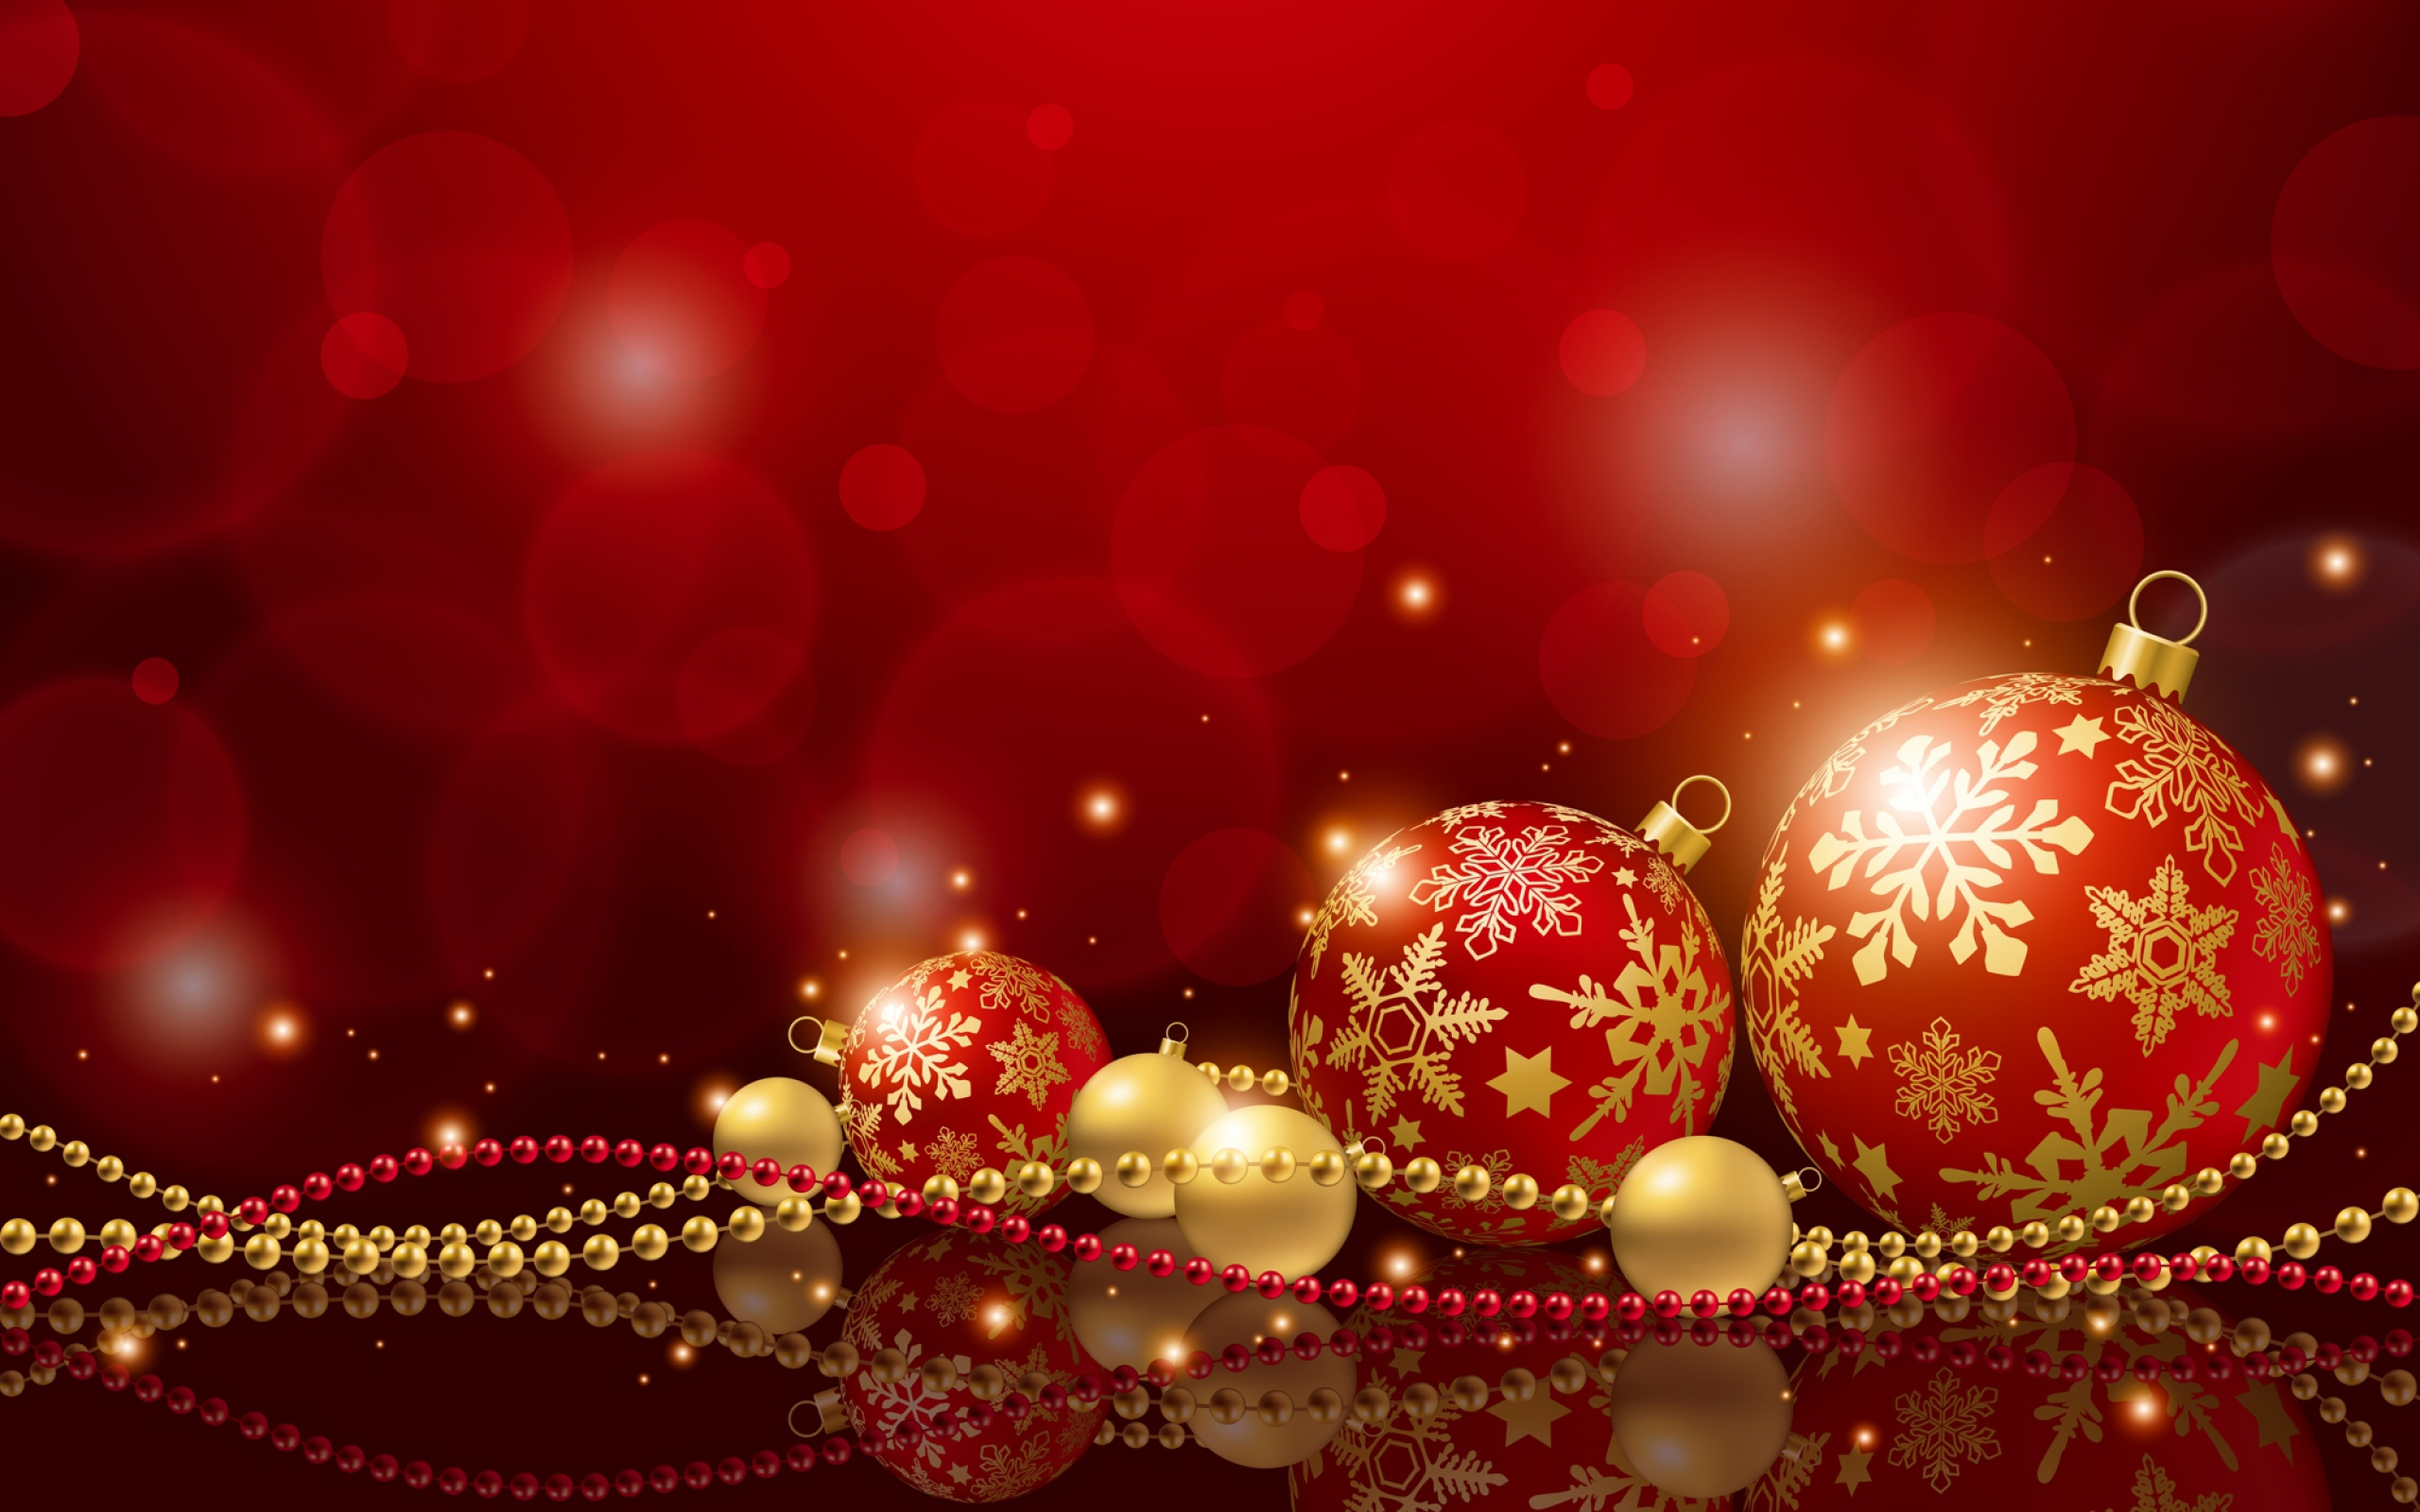 New Year Christmas Holiday wallpaper 2560x1600 26544 2560x1600